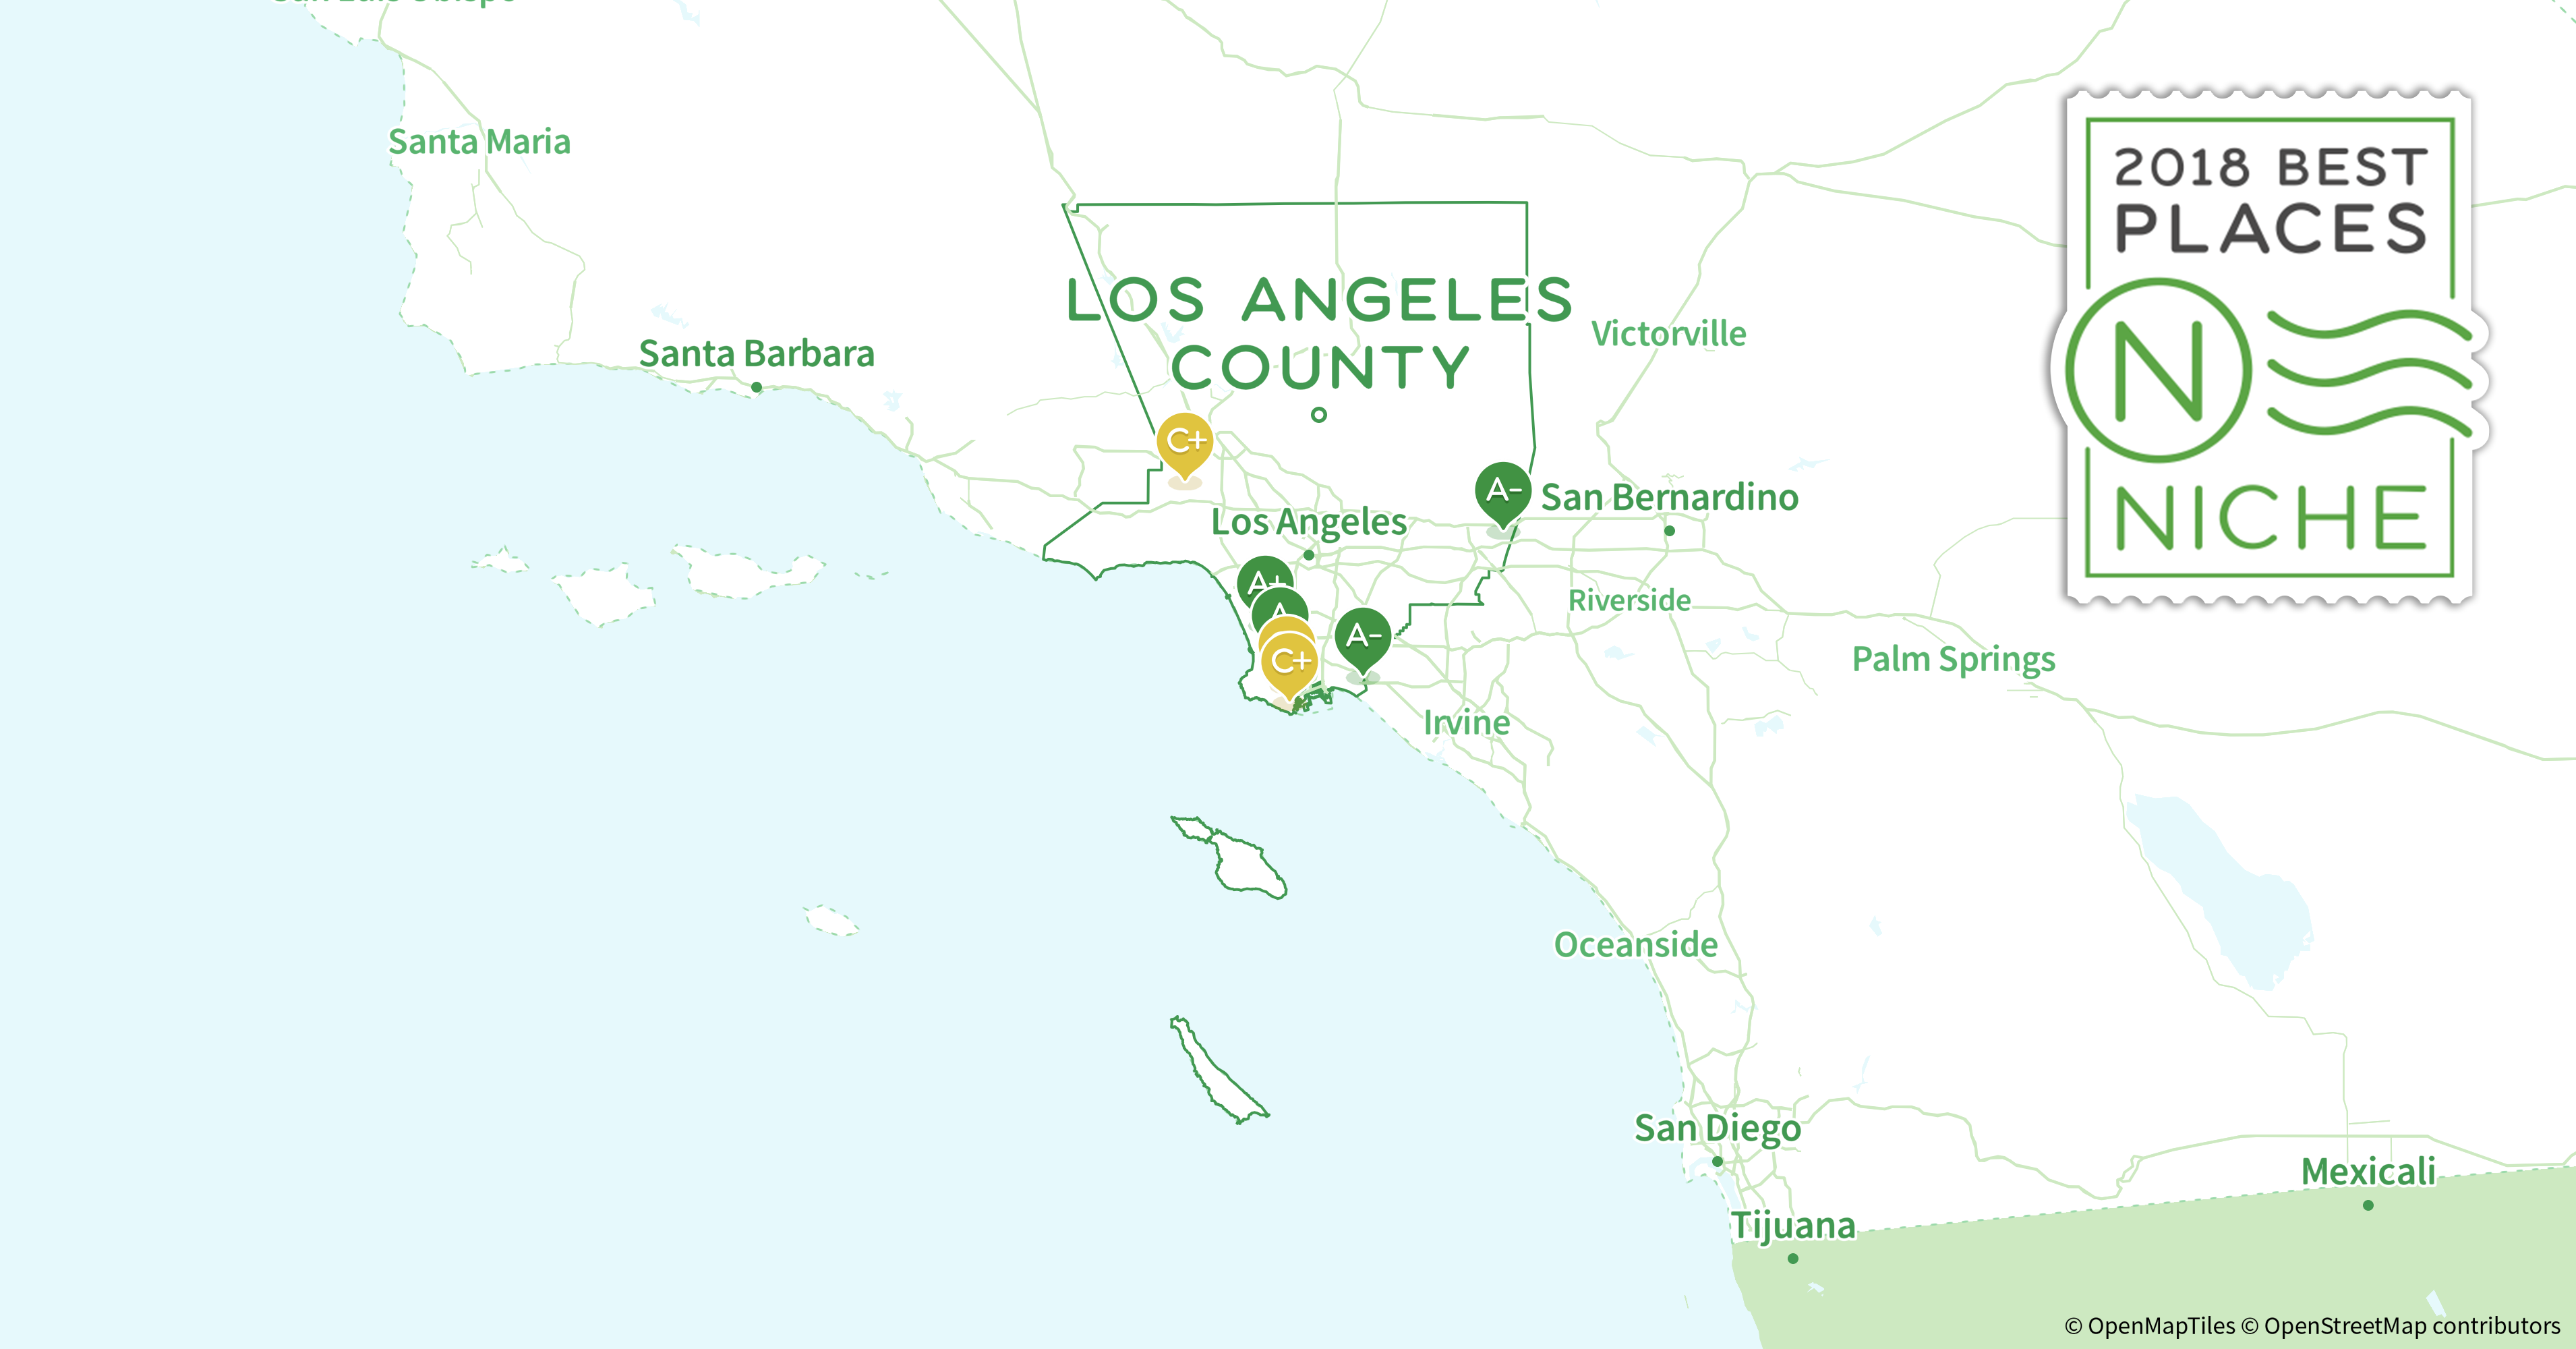 2018 best places to live in los angeles county ca niche rh niche com best places to live in los angeles ca 2018 best places to live in los angeles for 20s